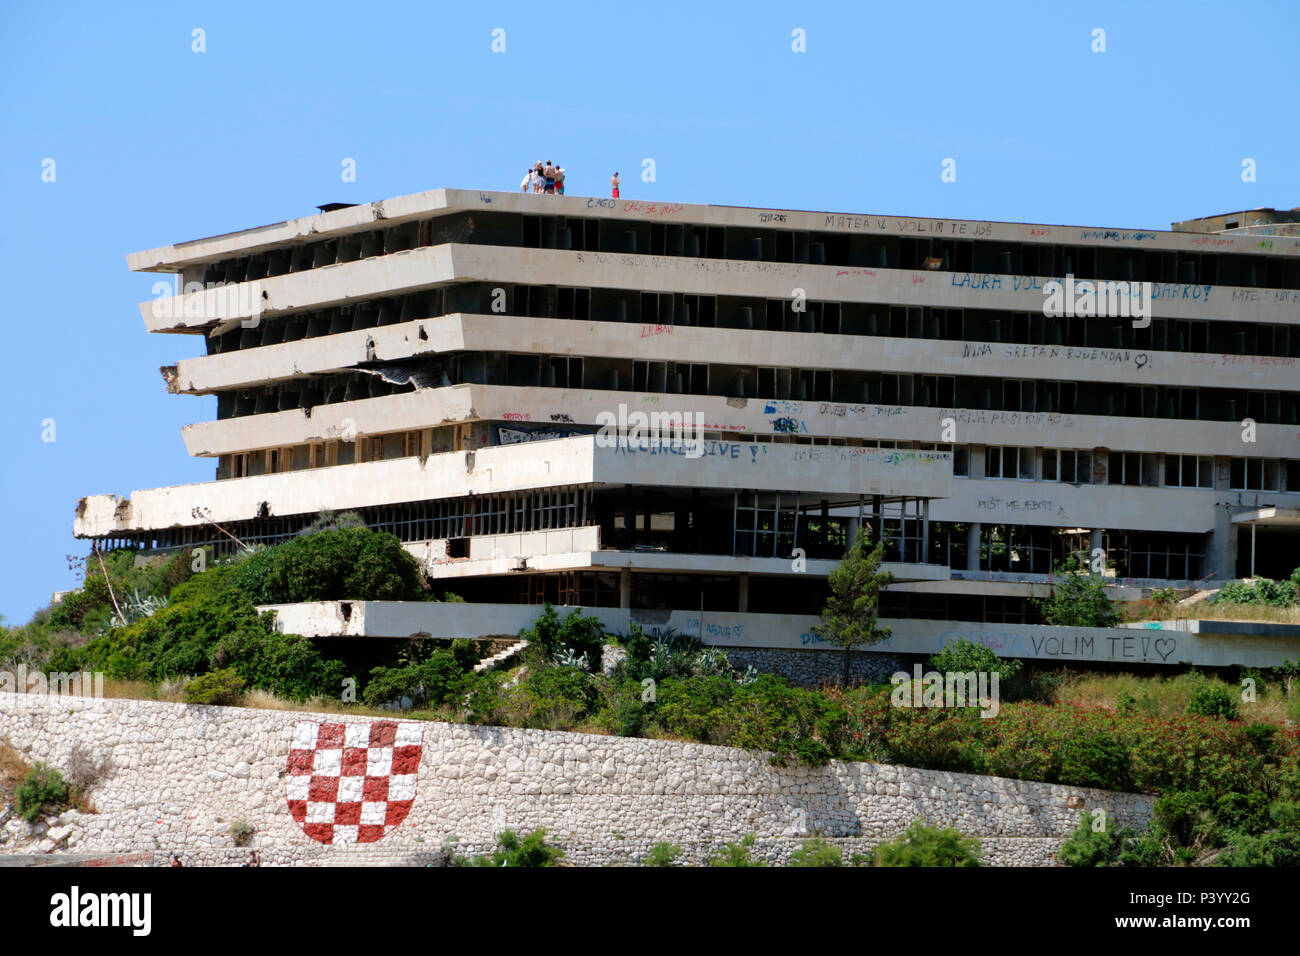 Bombed out and derelict hotels in the resort of Kupari near Dubrovnik in Croatia which were destroyed during the Balkans conflict 1991-1992 Stock Photo